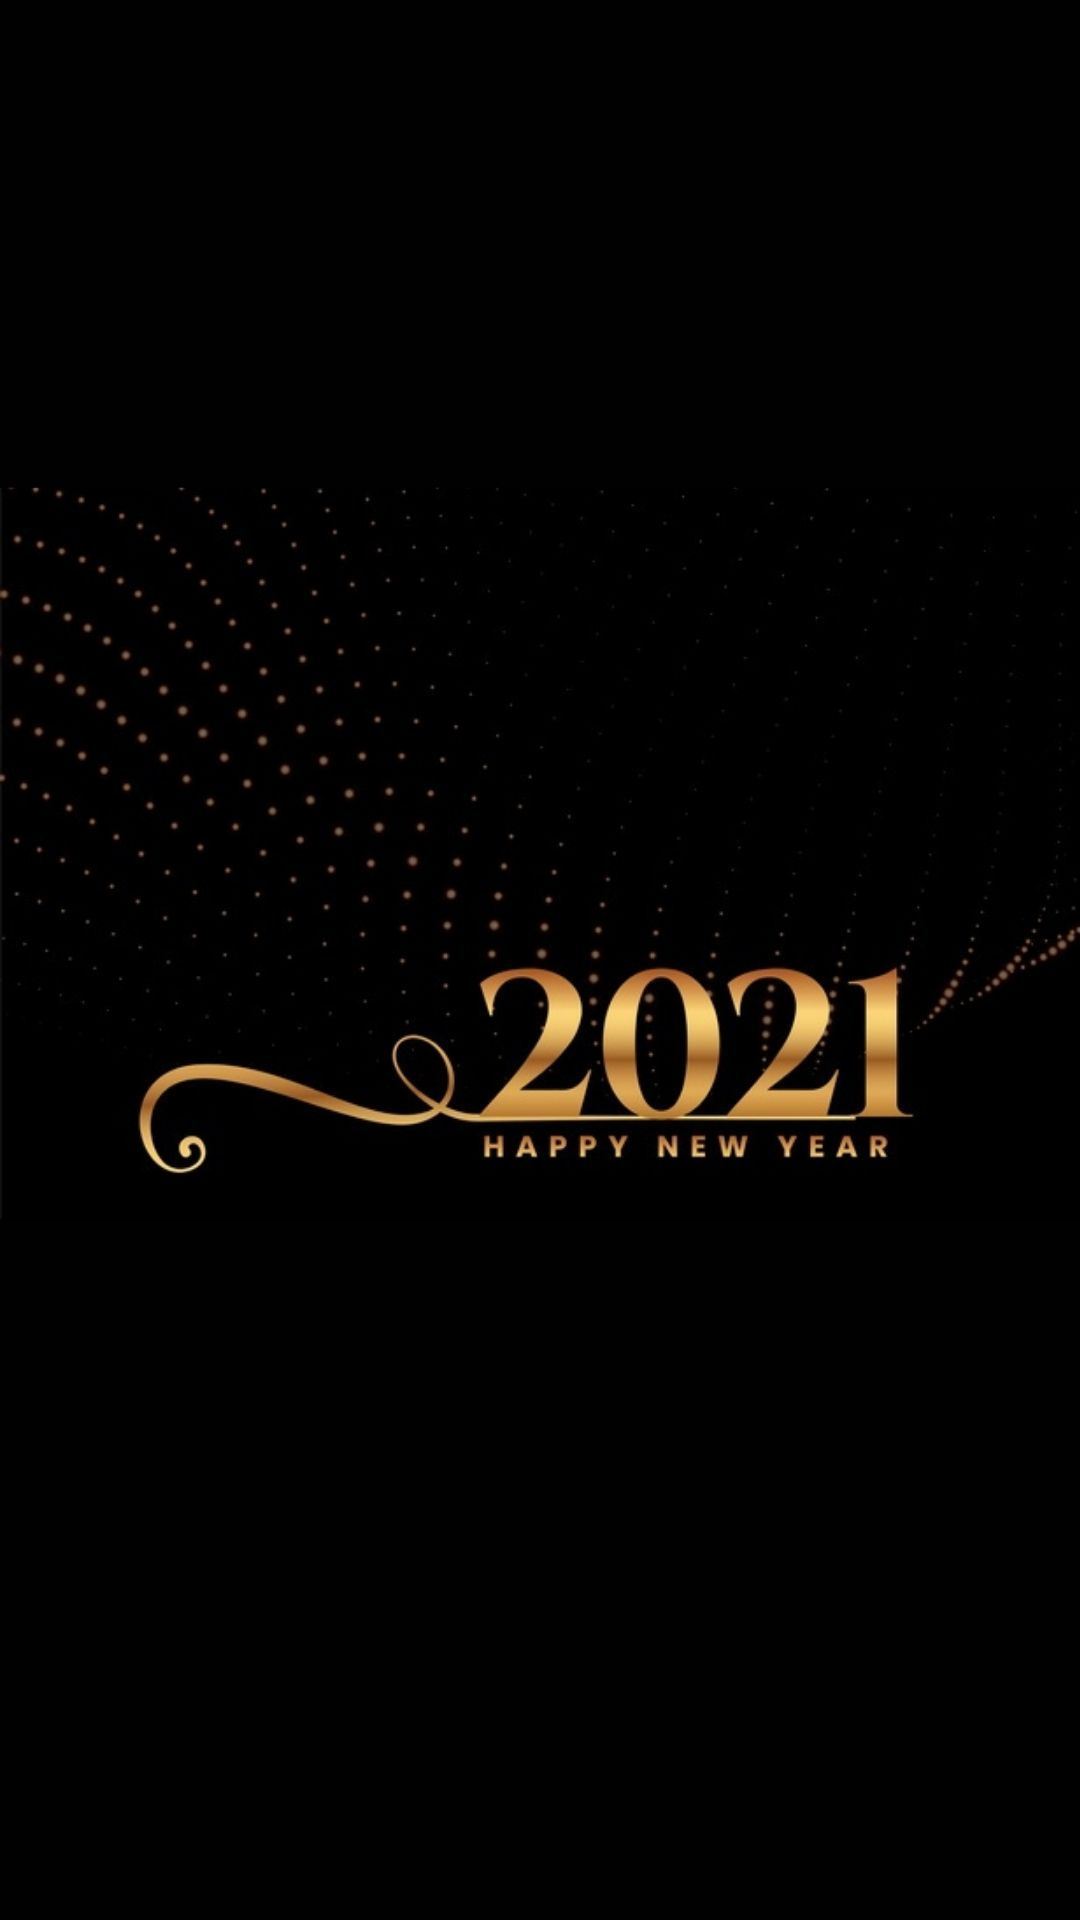 New Year Wallpapers Hd Backgrounds 2021 New Year Wallpaper New Year Wallpaper Hd Happy New Year Wallpaper